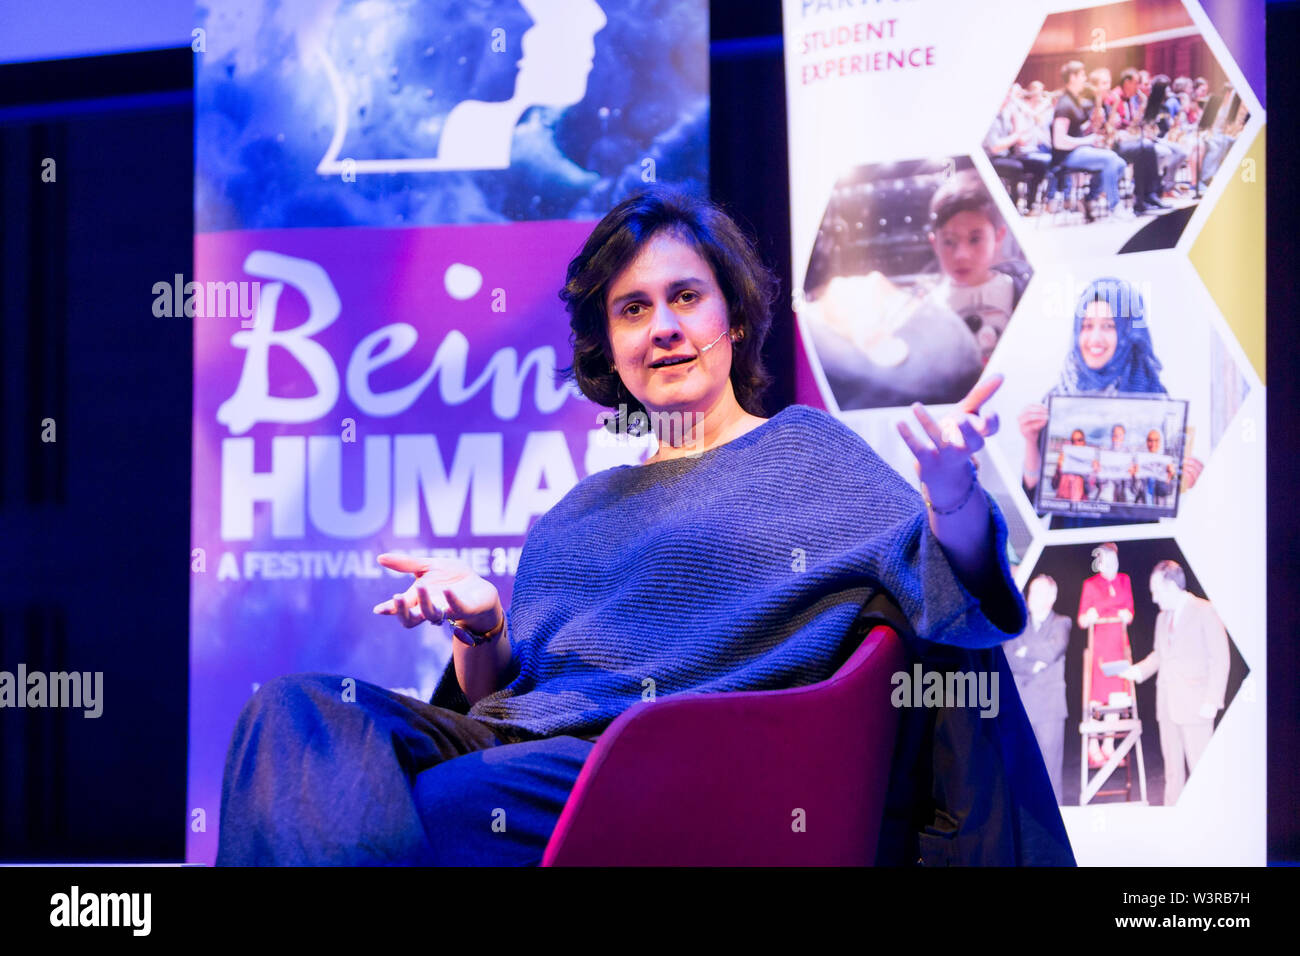 Writer and novelist Kamila Shamsie speaking at the Being Human Festival, Swansea. - Stock Image